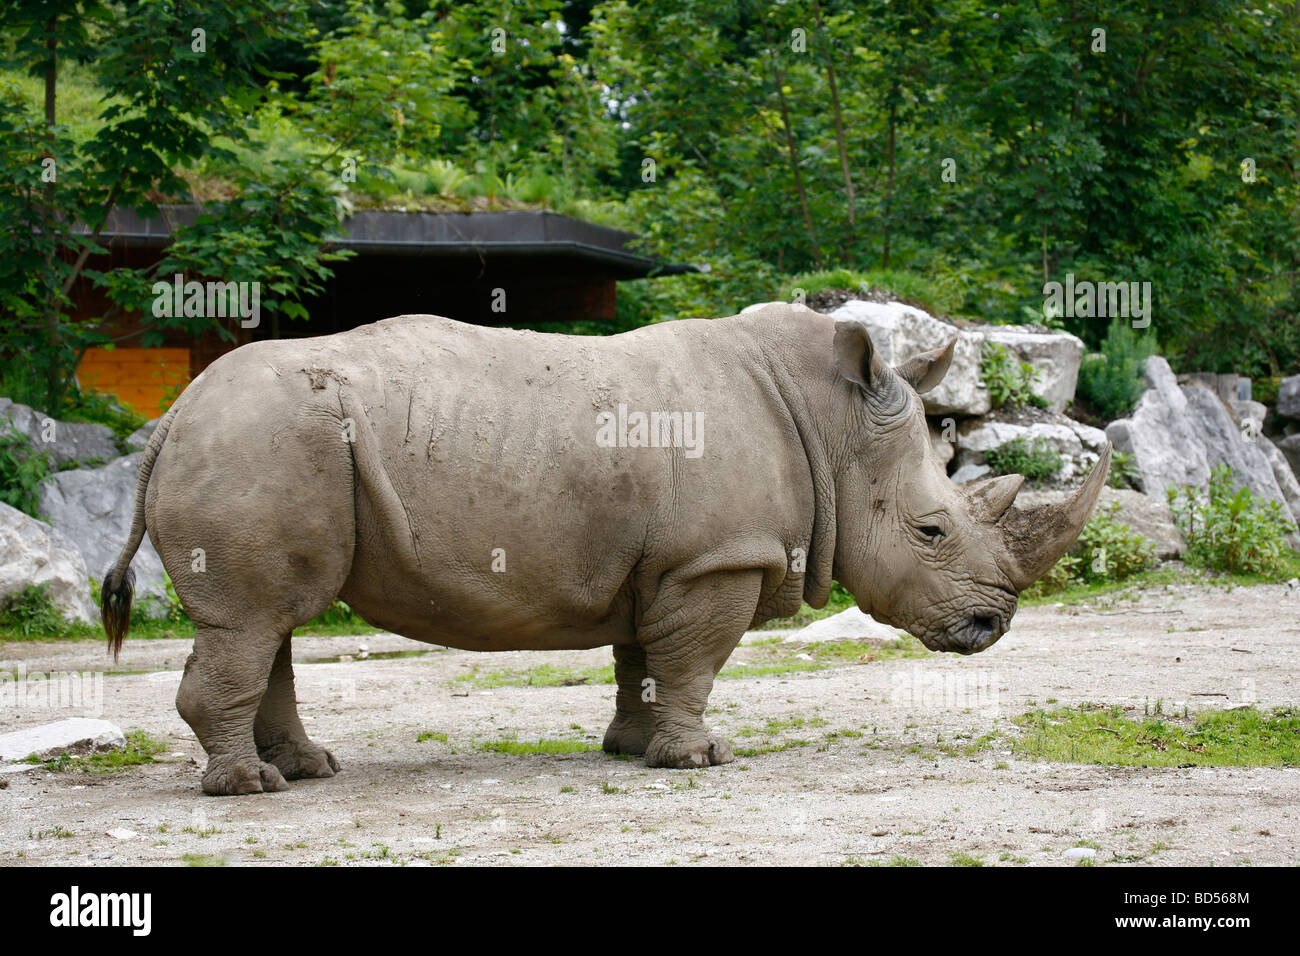 White Rhinoceros, Square-lipped Rhinoceros (Ceratotherium simum), male at Hellbrunn Zoo, Salzburg, Austria - Stock Image